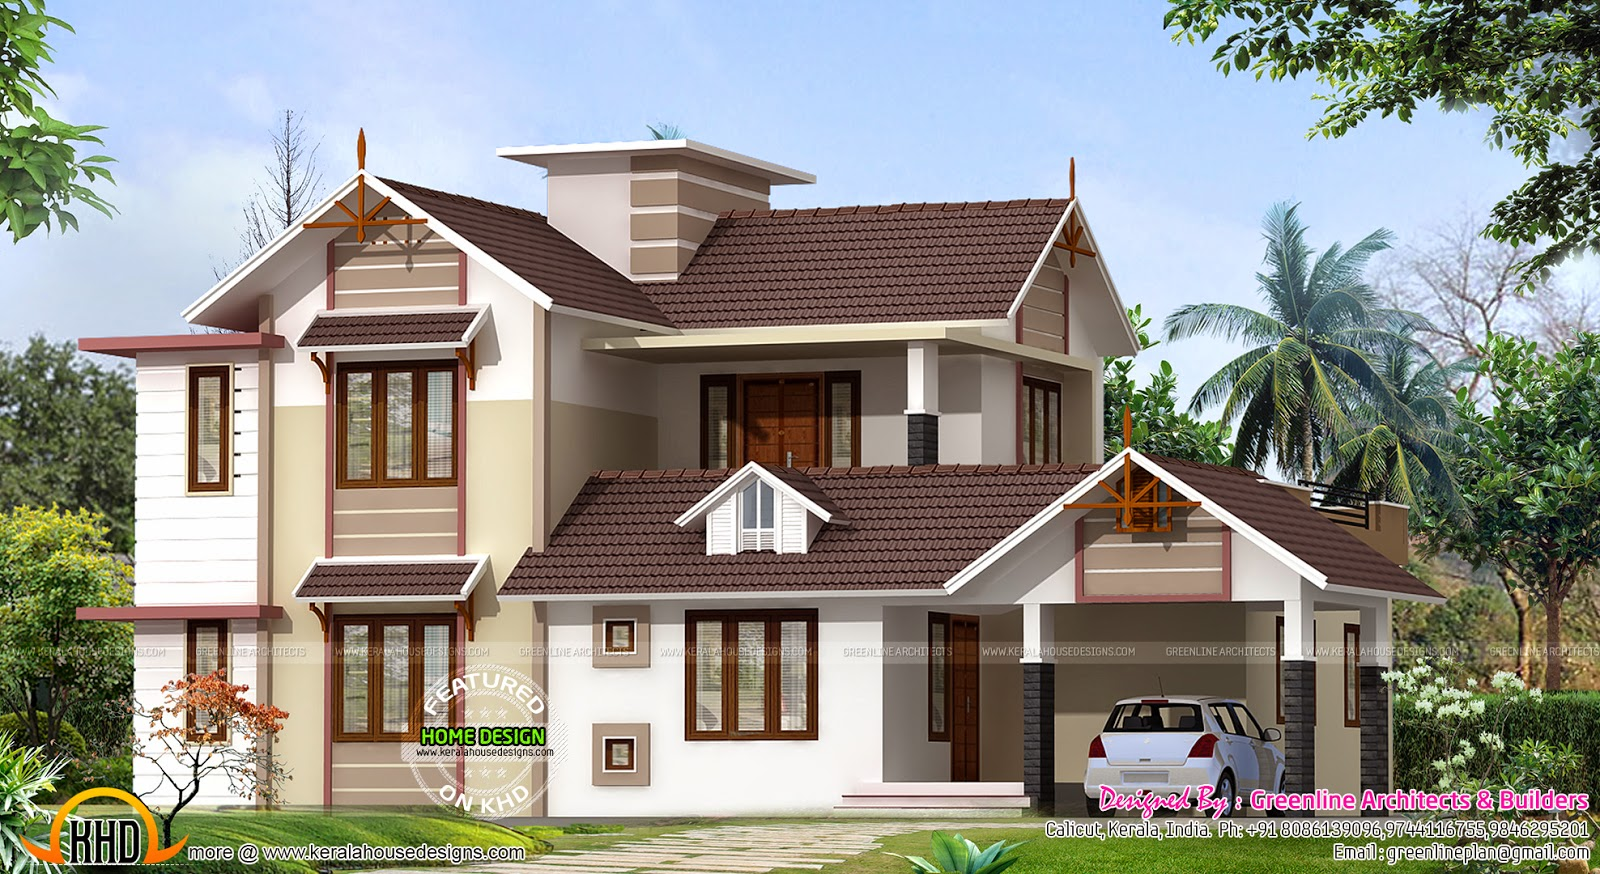 2400 sq ft new house design kerala home design and floor for Latest house designs photos